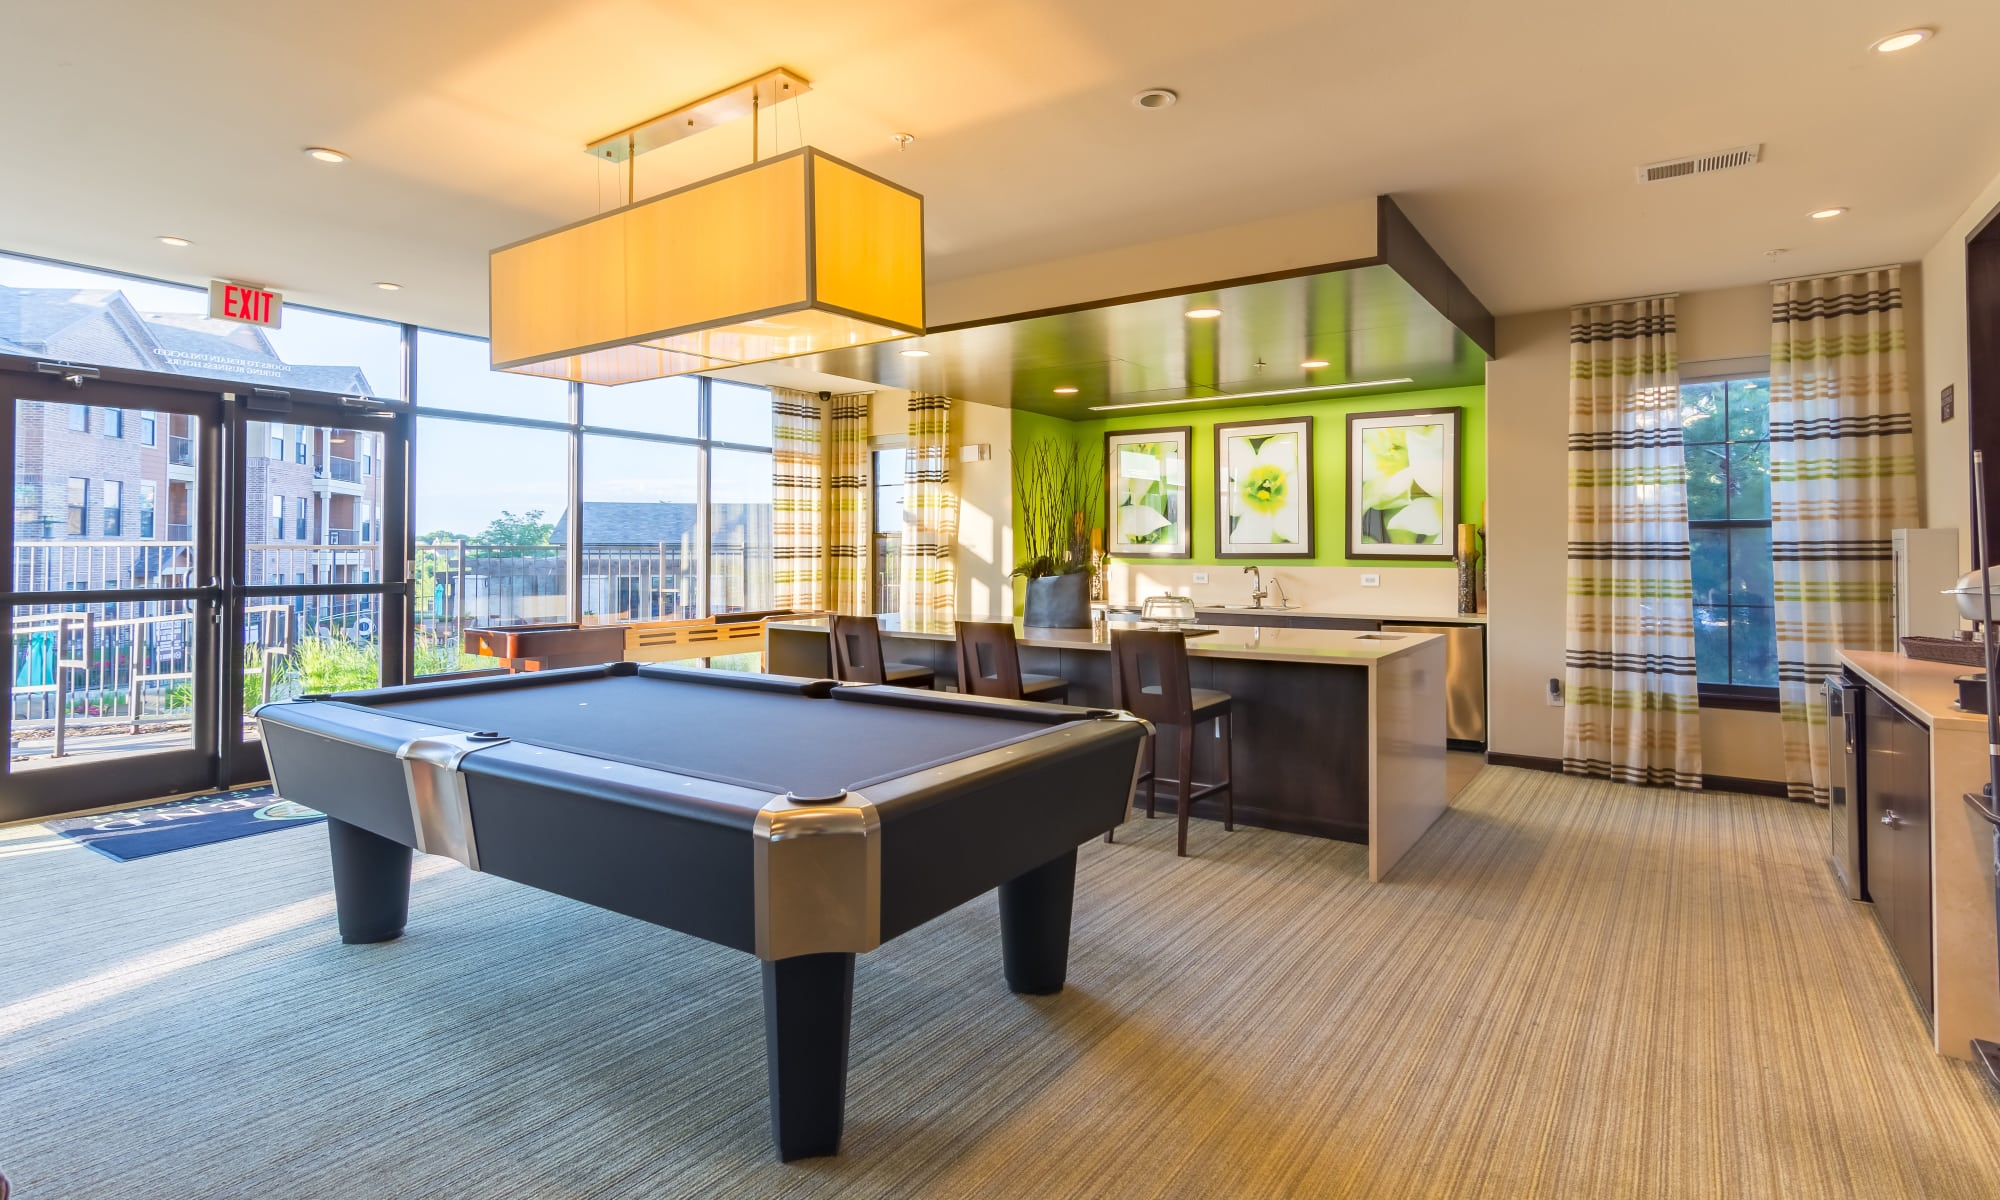 Learn more about our apartment community at West End at City Center in Lenexa